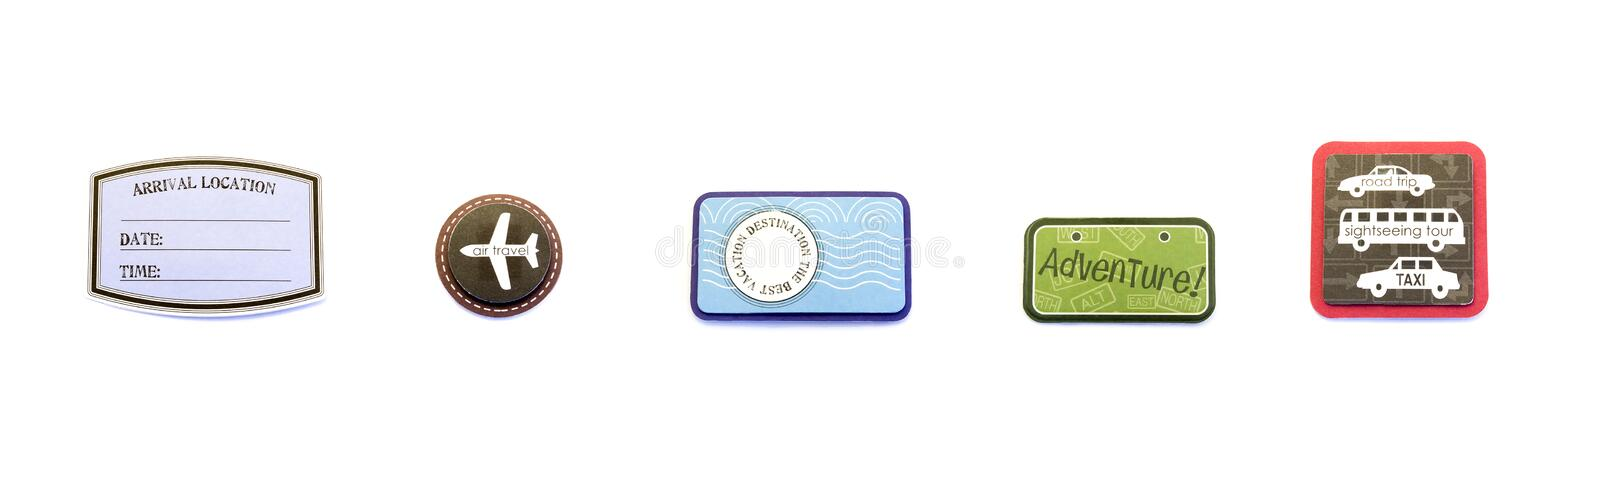 Air/Travel/Vacation Badges stock image